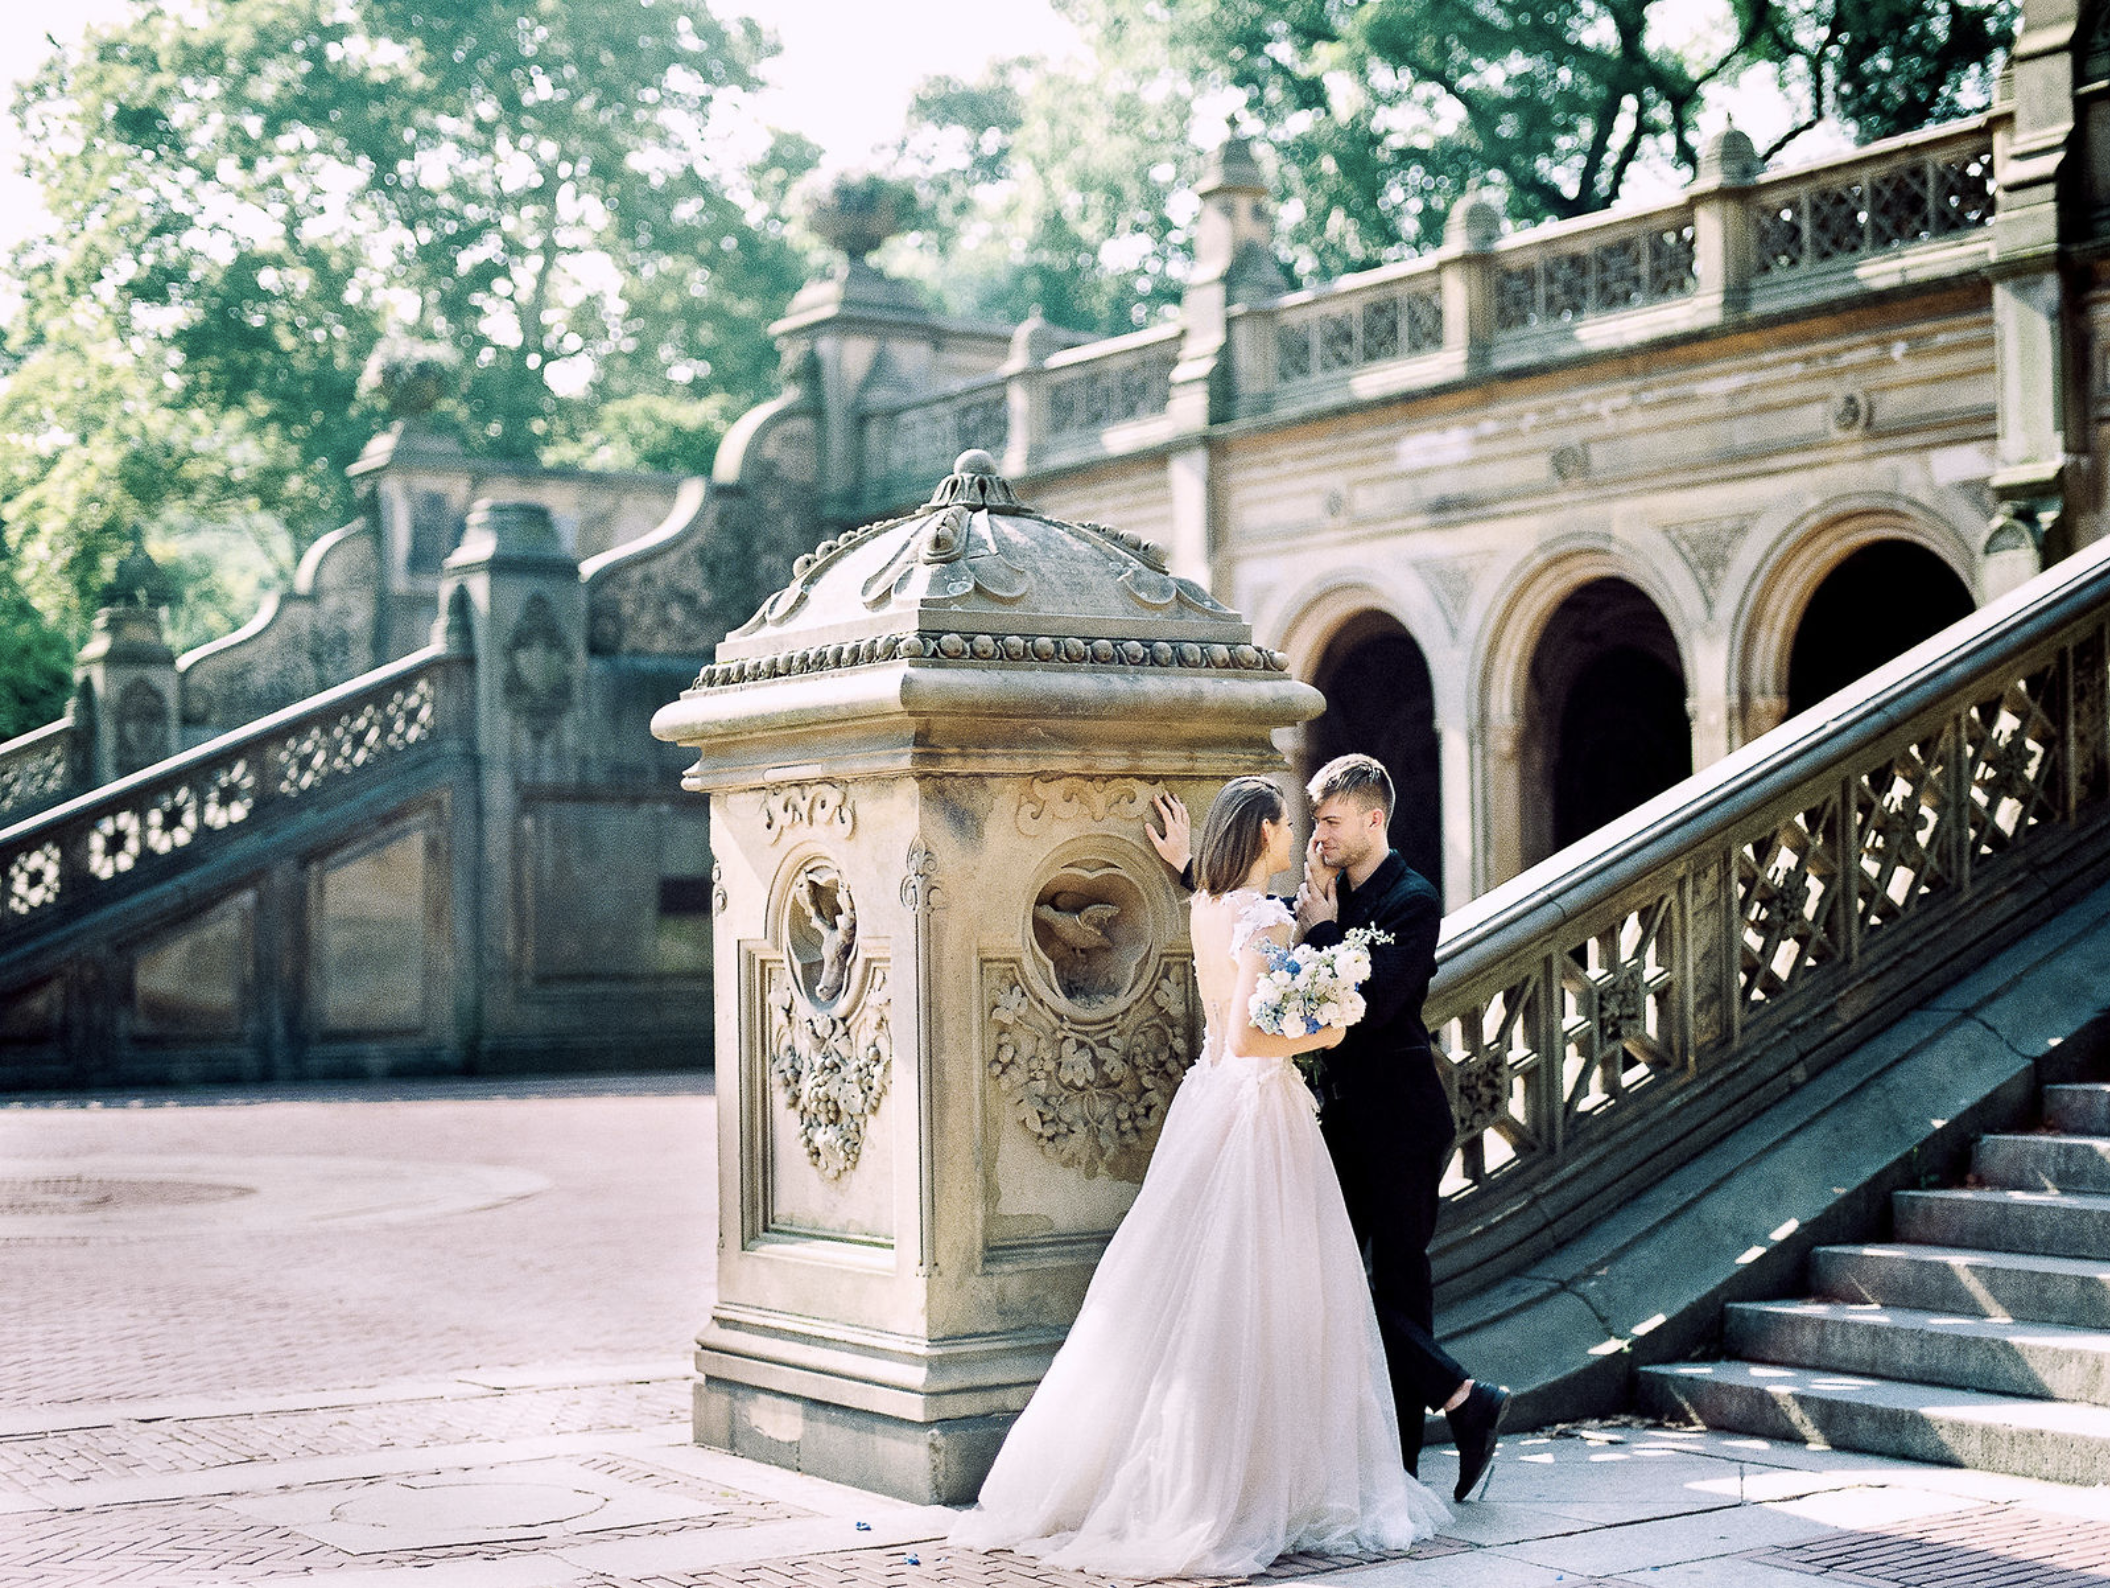 Two Lovers in the Heart of New York wedding editorial shoot | www.chavelli.com